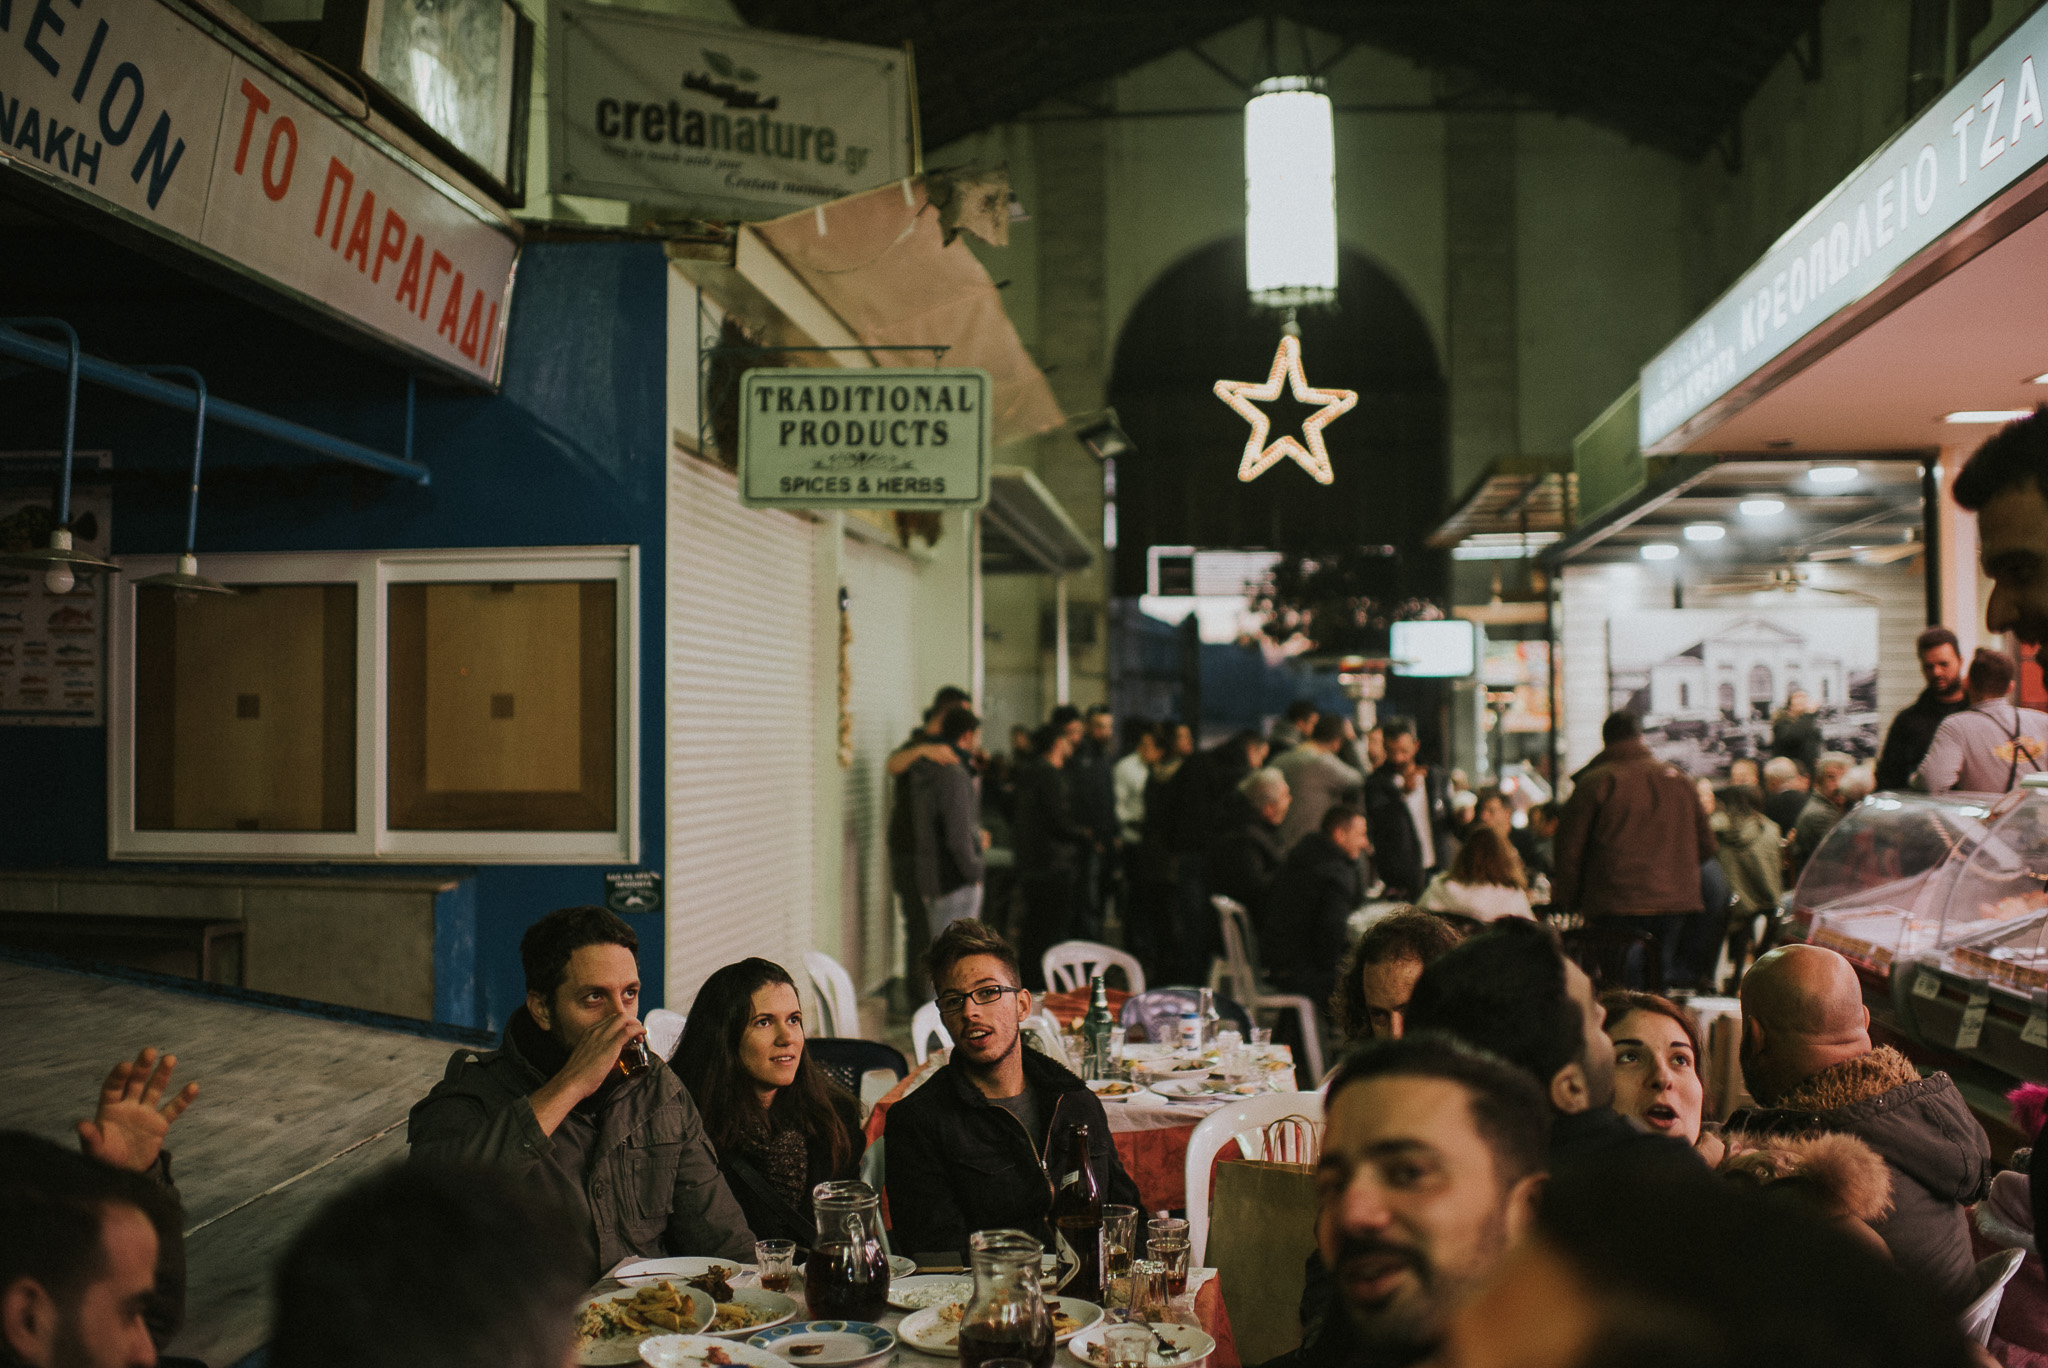 Eating together in the Agora market